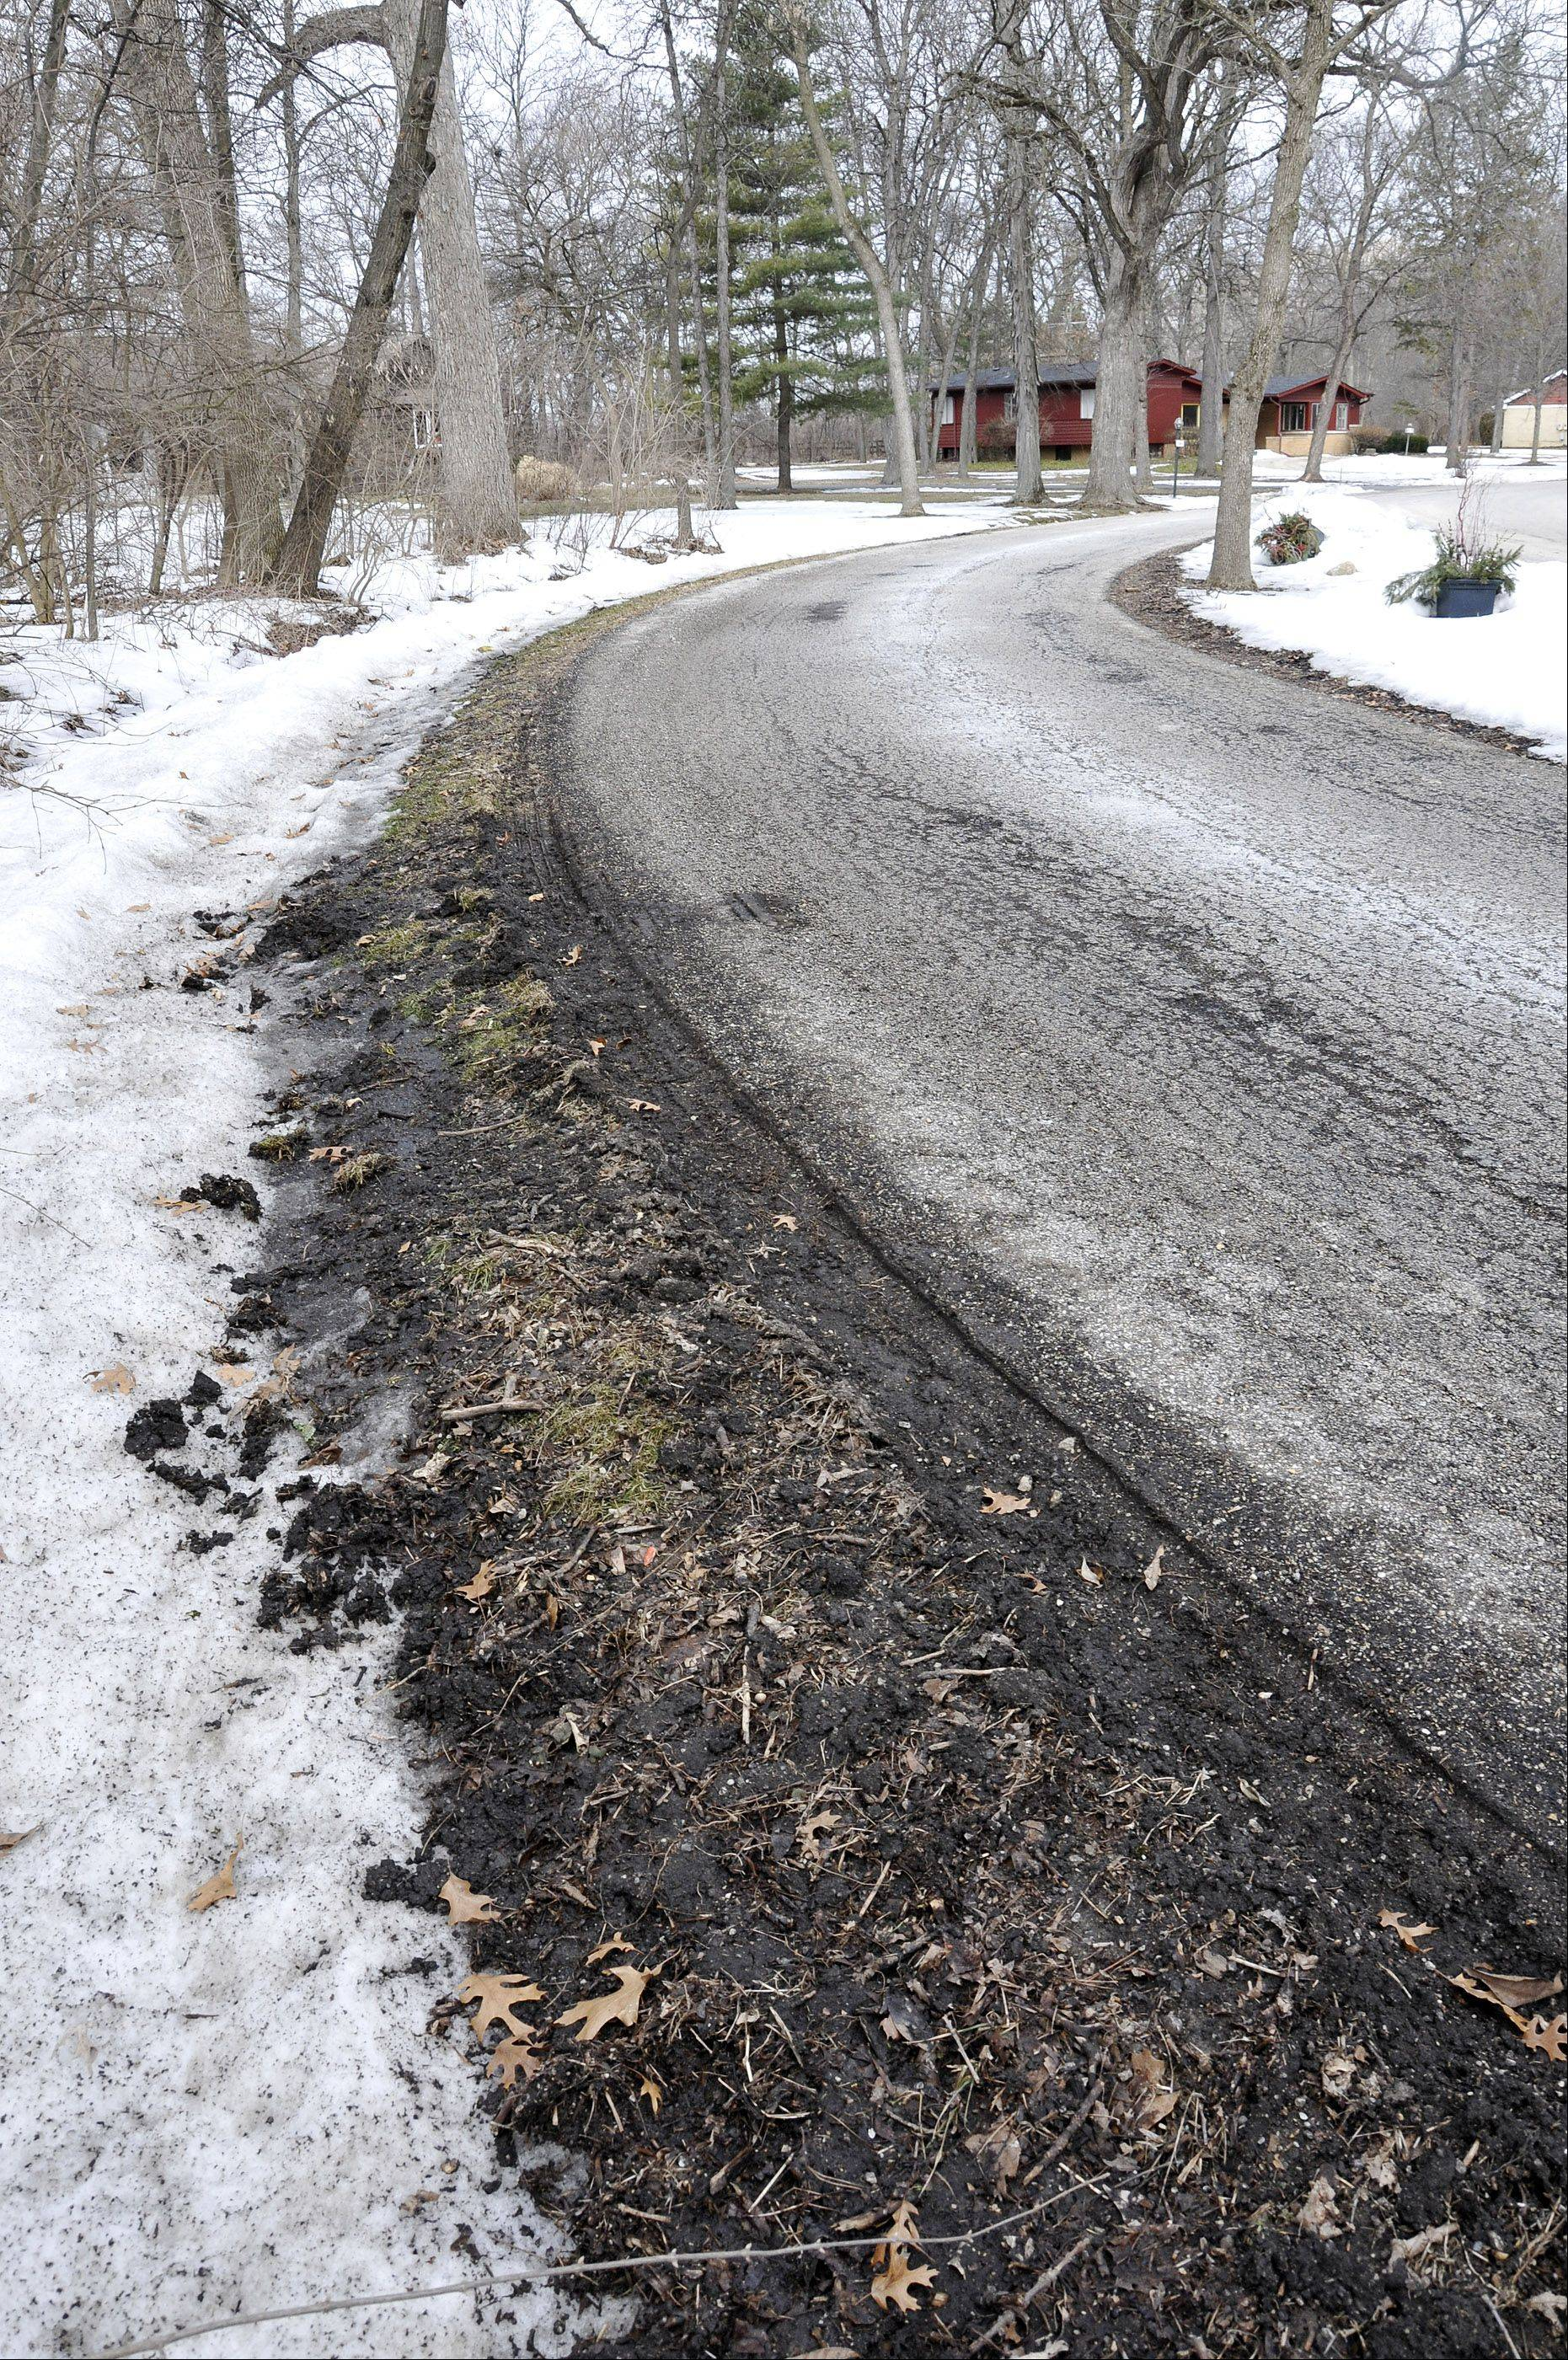 The deteriorating conditions of residential roads like West Mardan Drive has Long Grove candidates weighing whether to ask voters to approve the village's first property tax to fund much-needed road repairs.